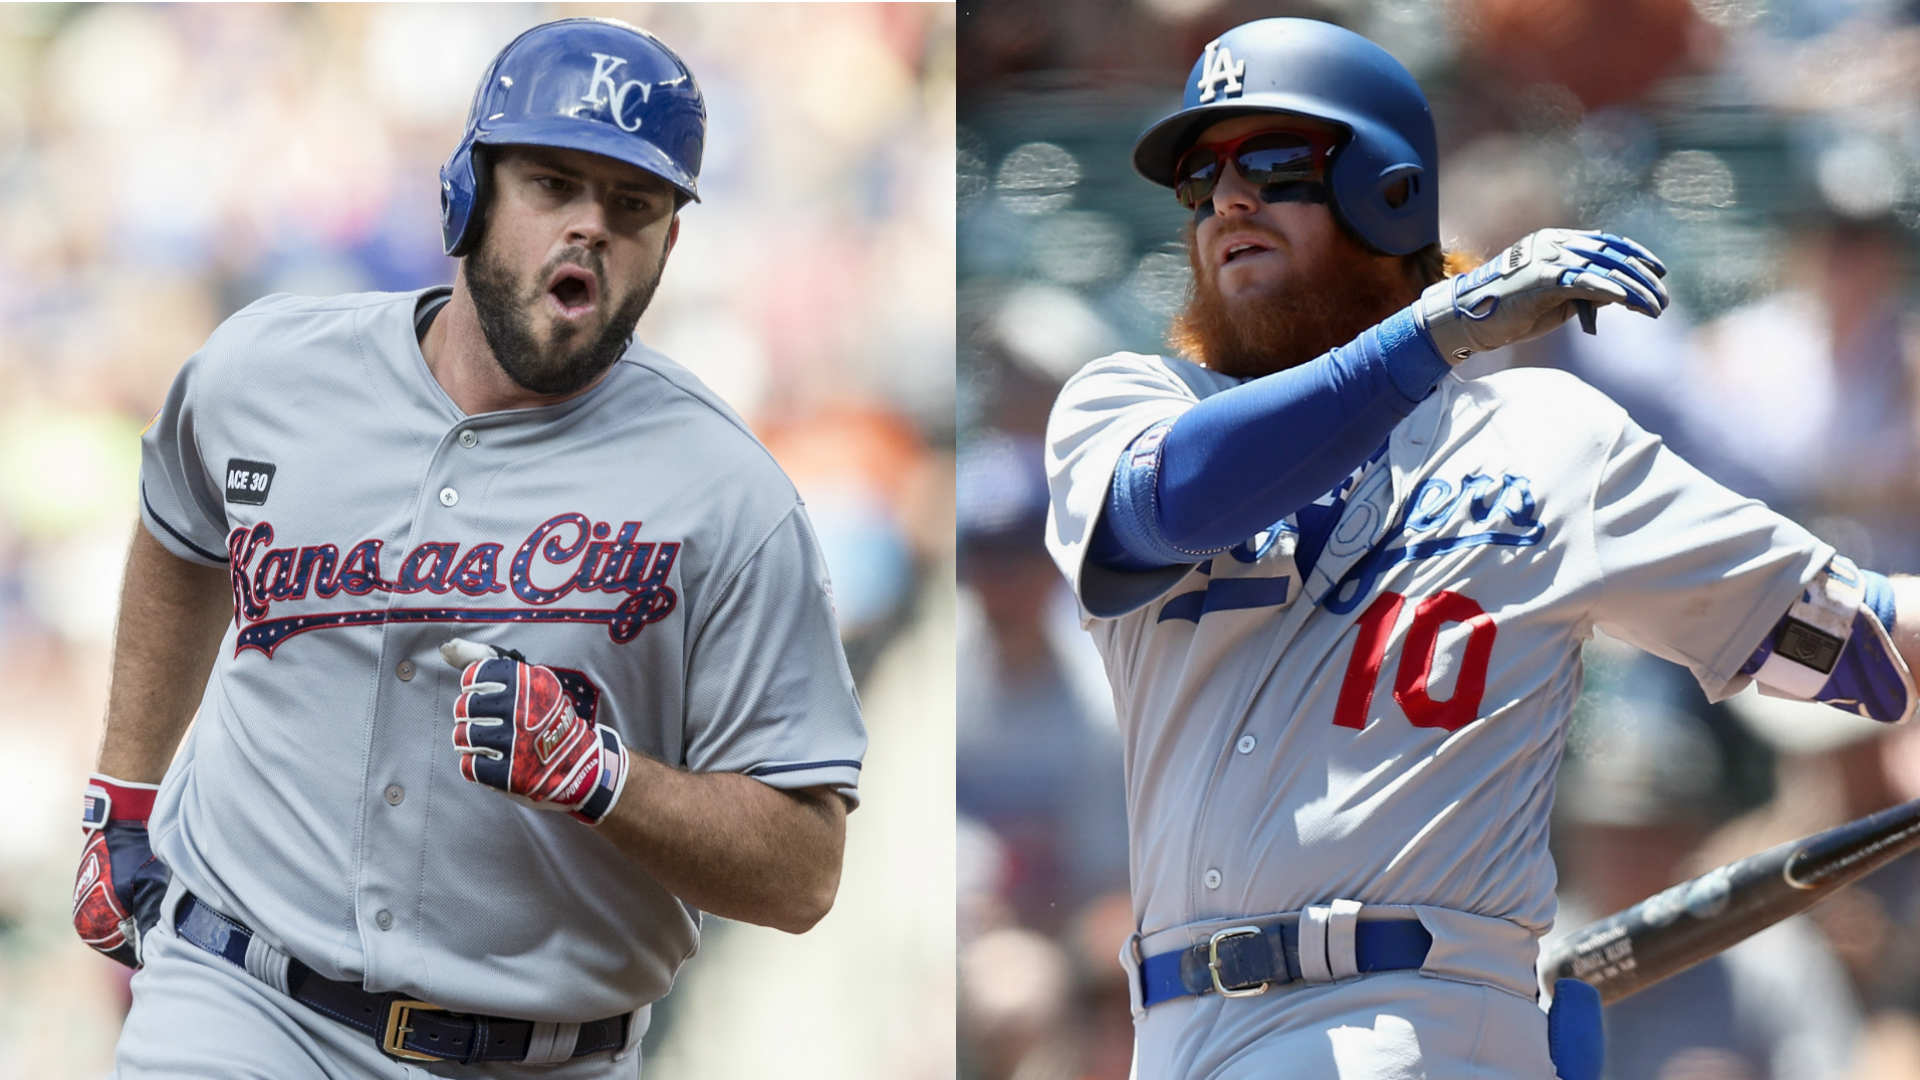 Royals' Mike Moustakas gets final spot in All-Star Game